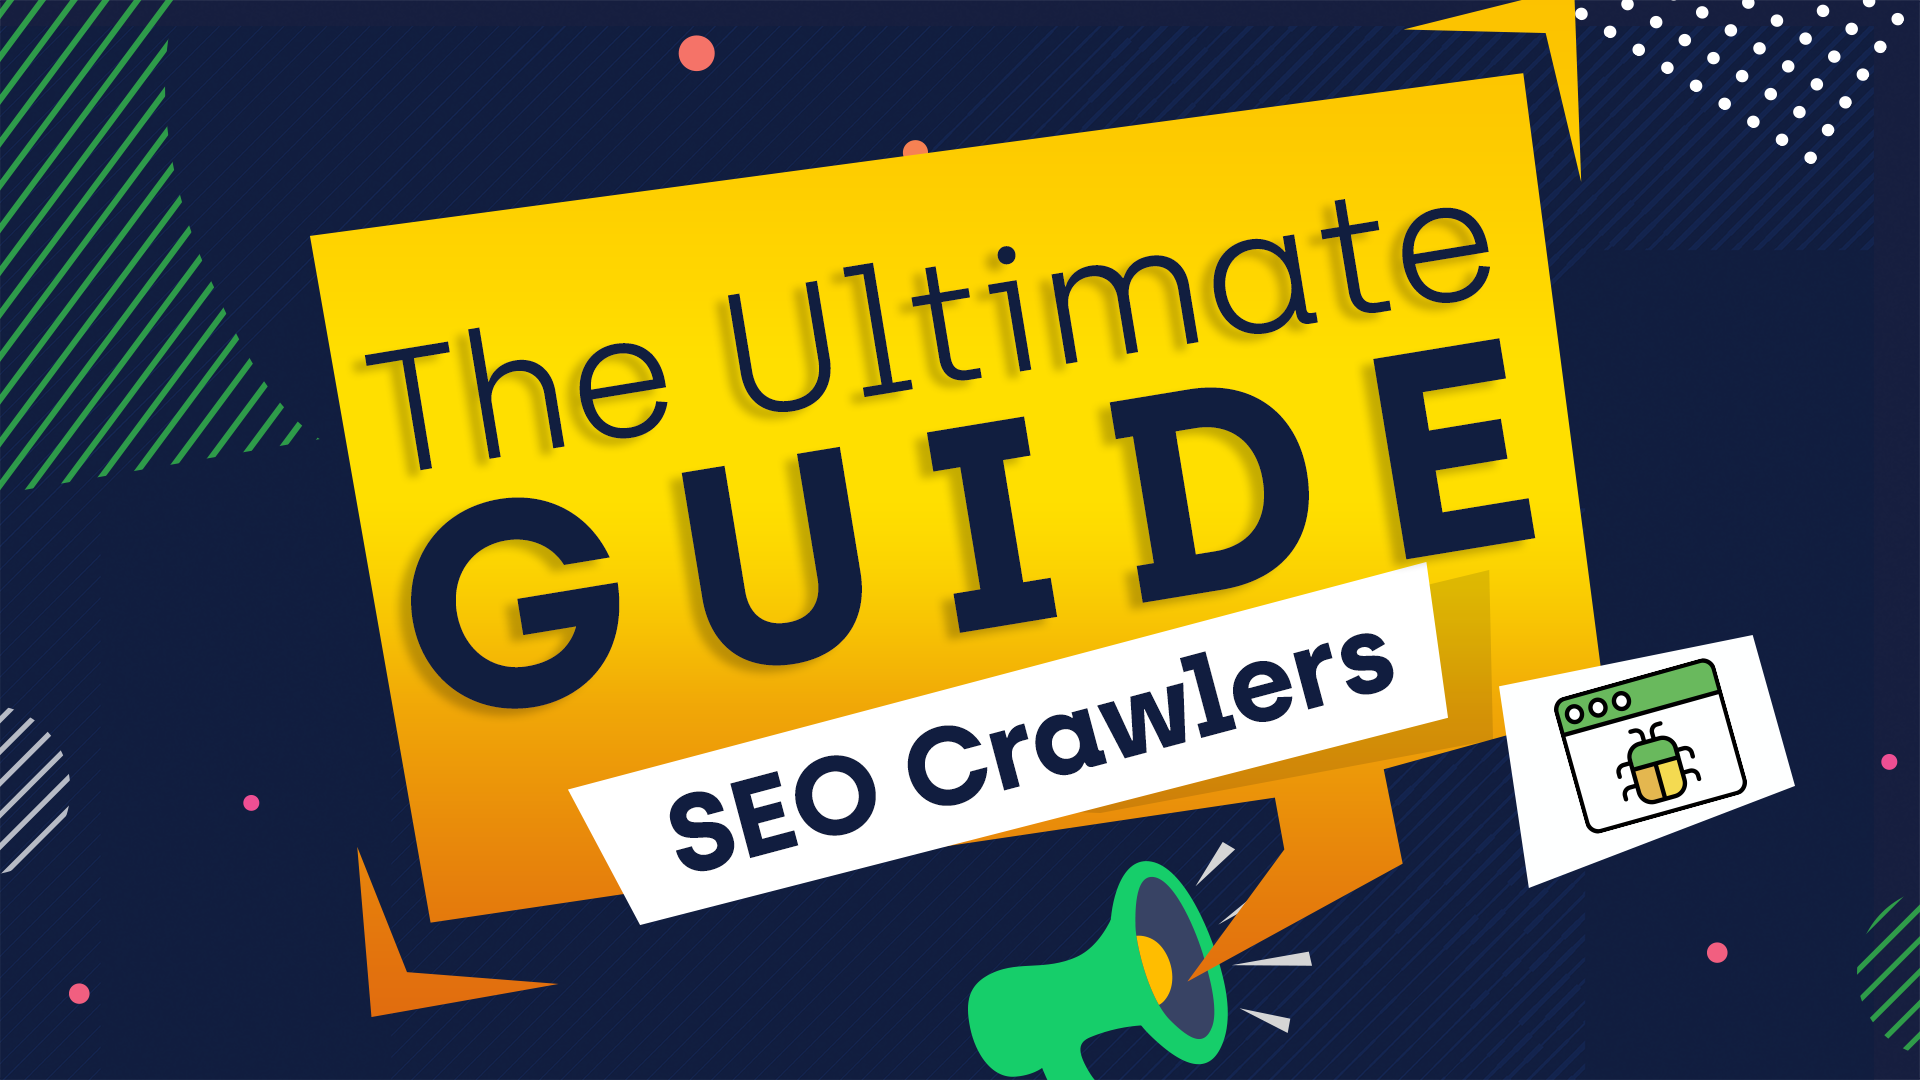 ultimate-guide-seo-crawlers - Ultimate-Guide-to-SEO-Crawlers-Header.png